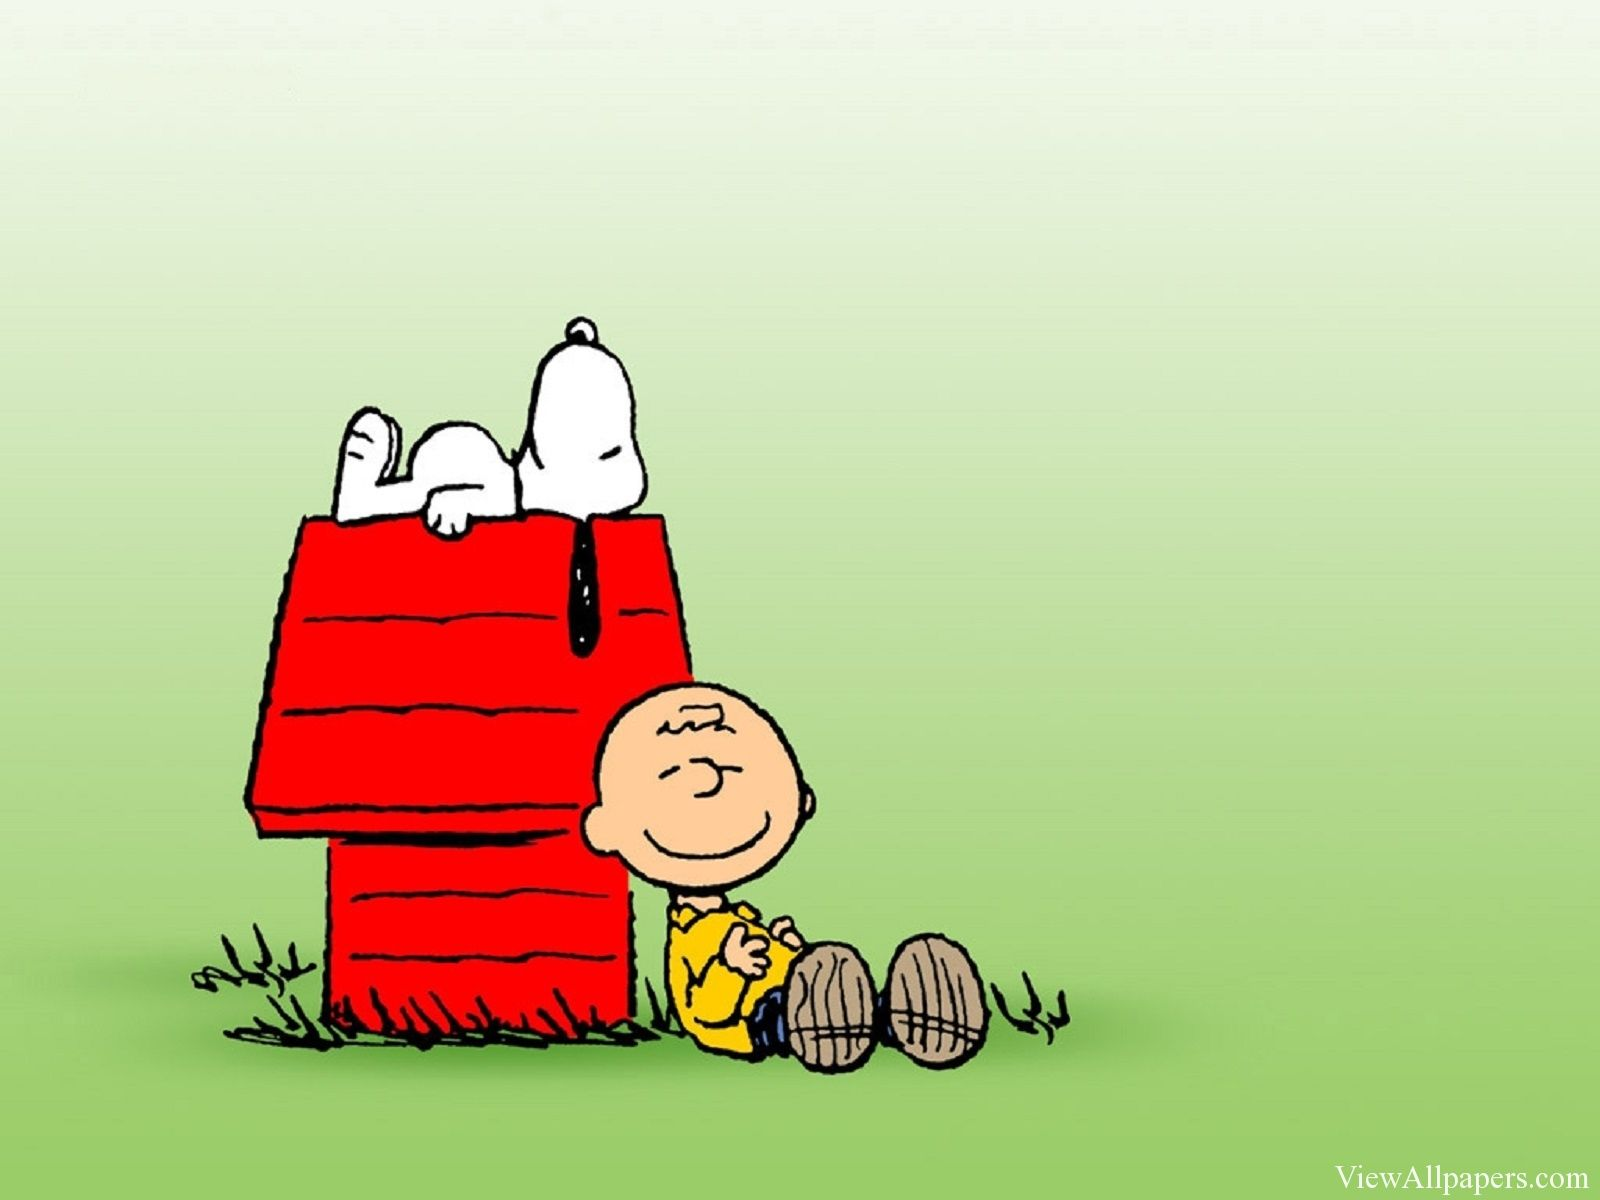 Charlie Brown and Snoopy High Resolution Wallpaper, Charlie Brown ...